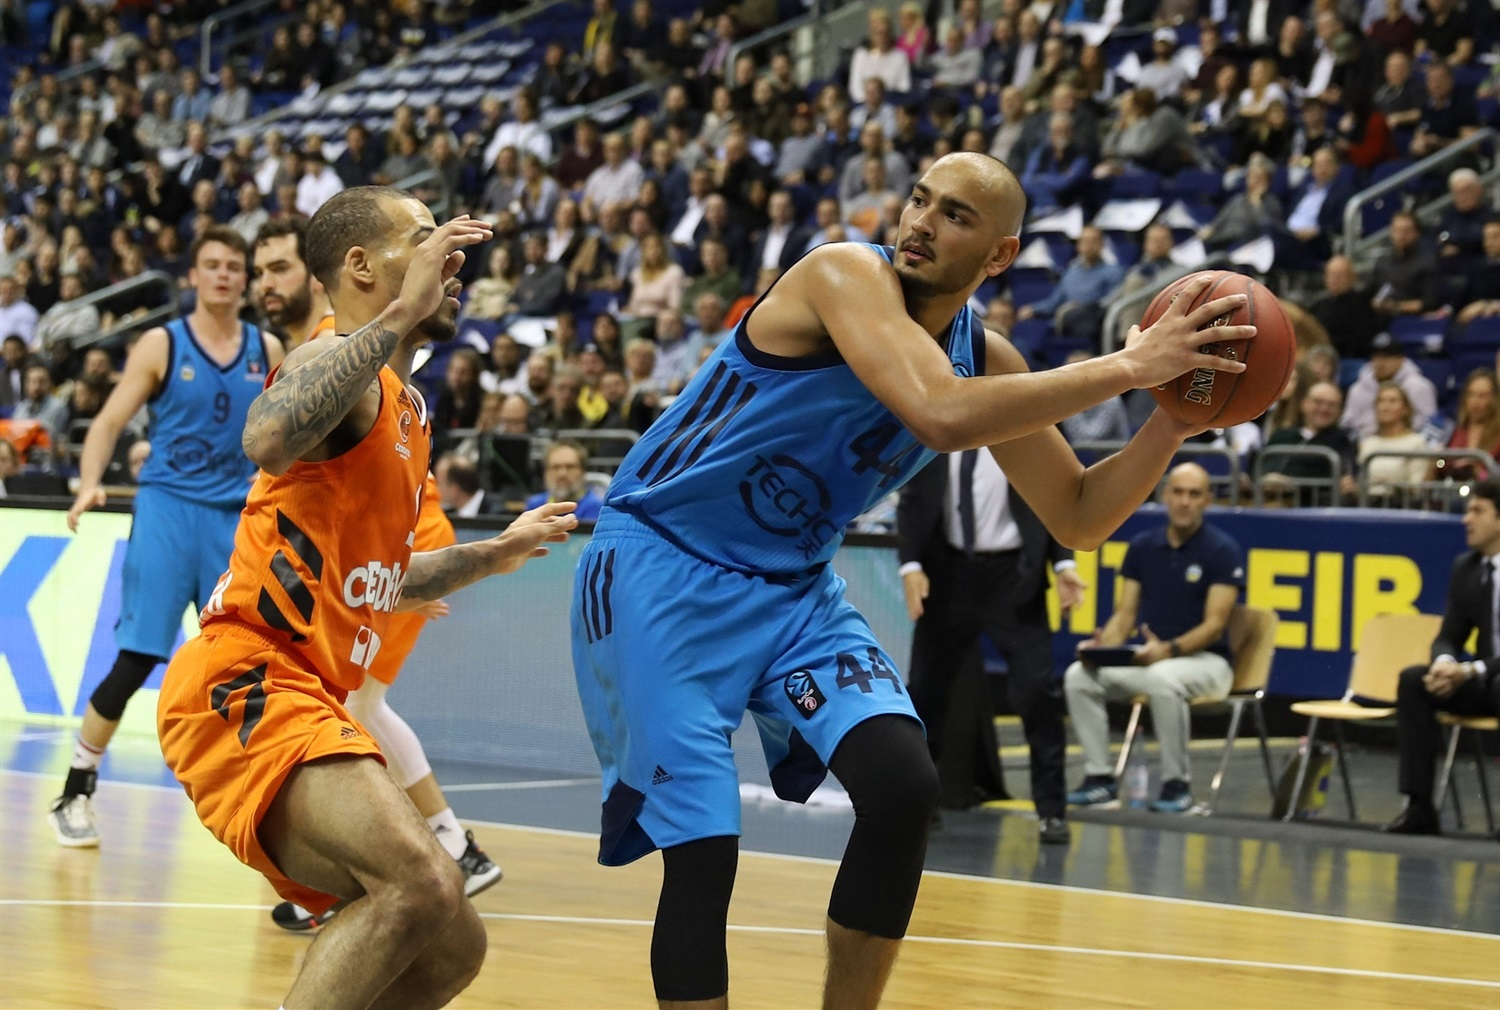 Stefan Peno - ALBA Berlin (photo Andreas Knopf - ALBA) - EC18